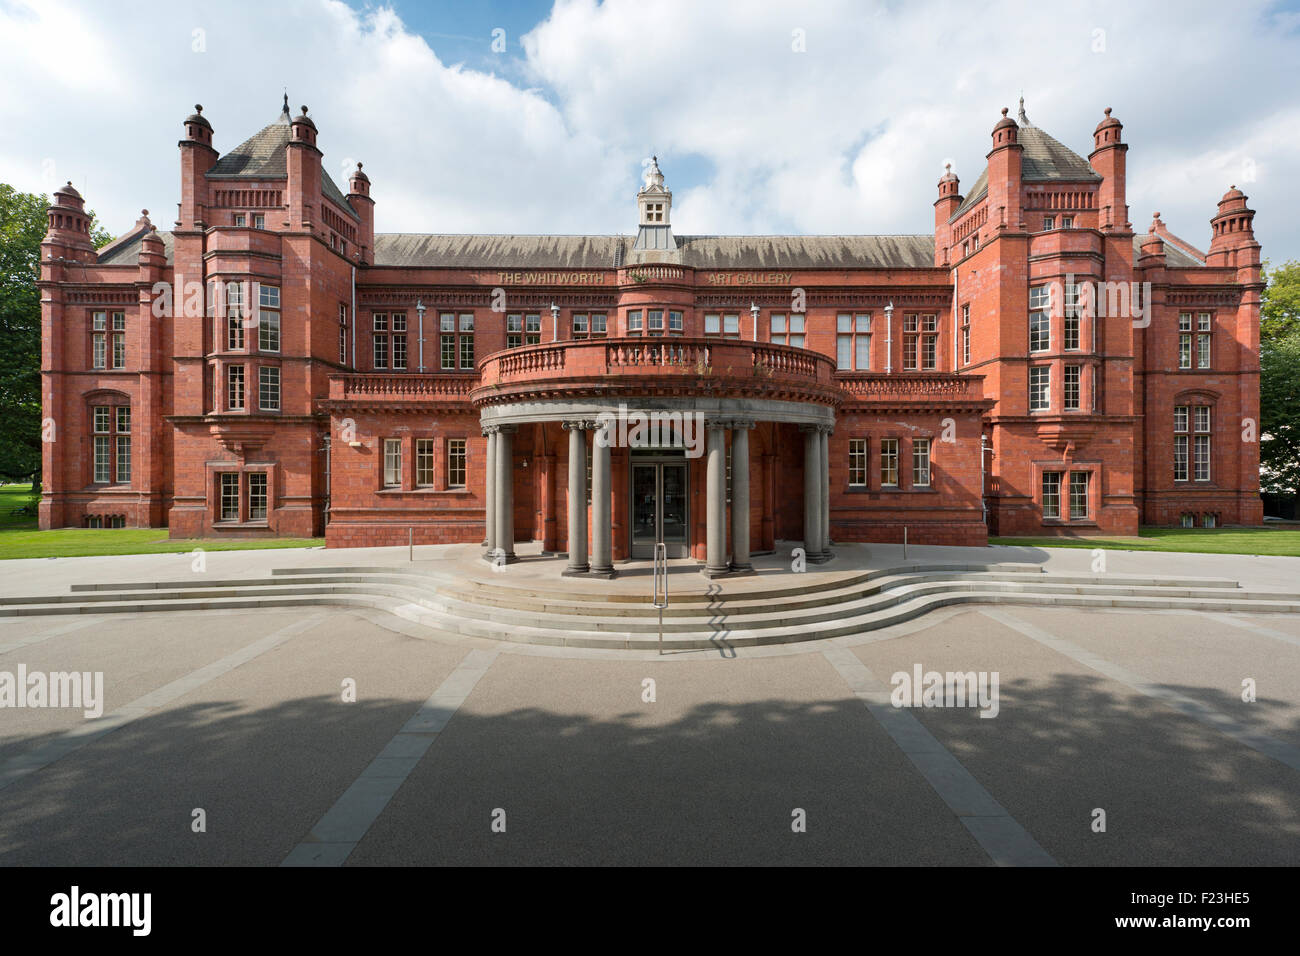 The Recently Refurbished Whitworth Art Gallery Located On The - Where is oxford located